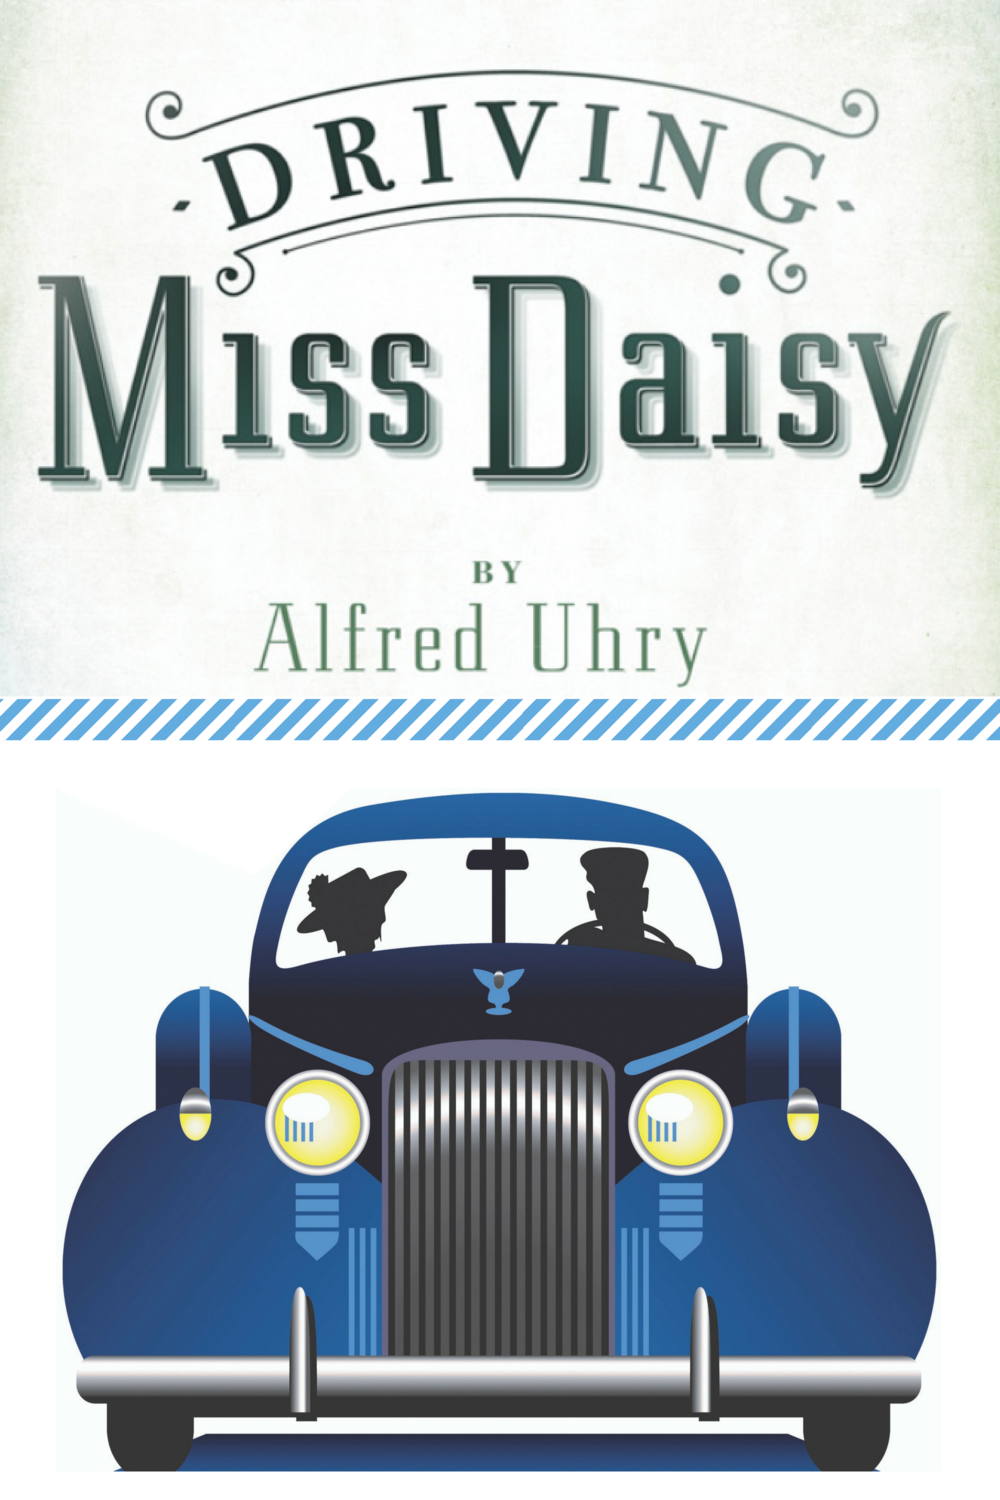 Driving Miss Daisy poster 20x30-3.png